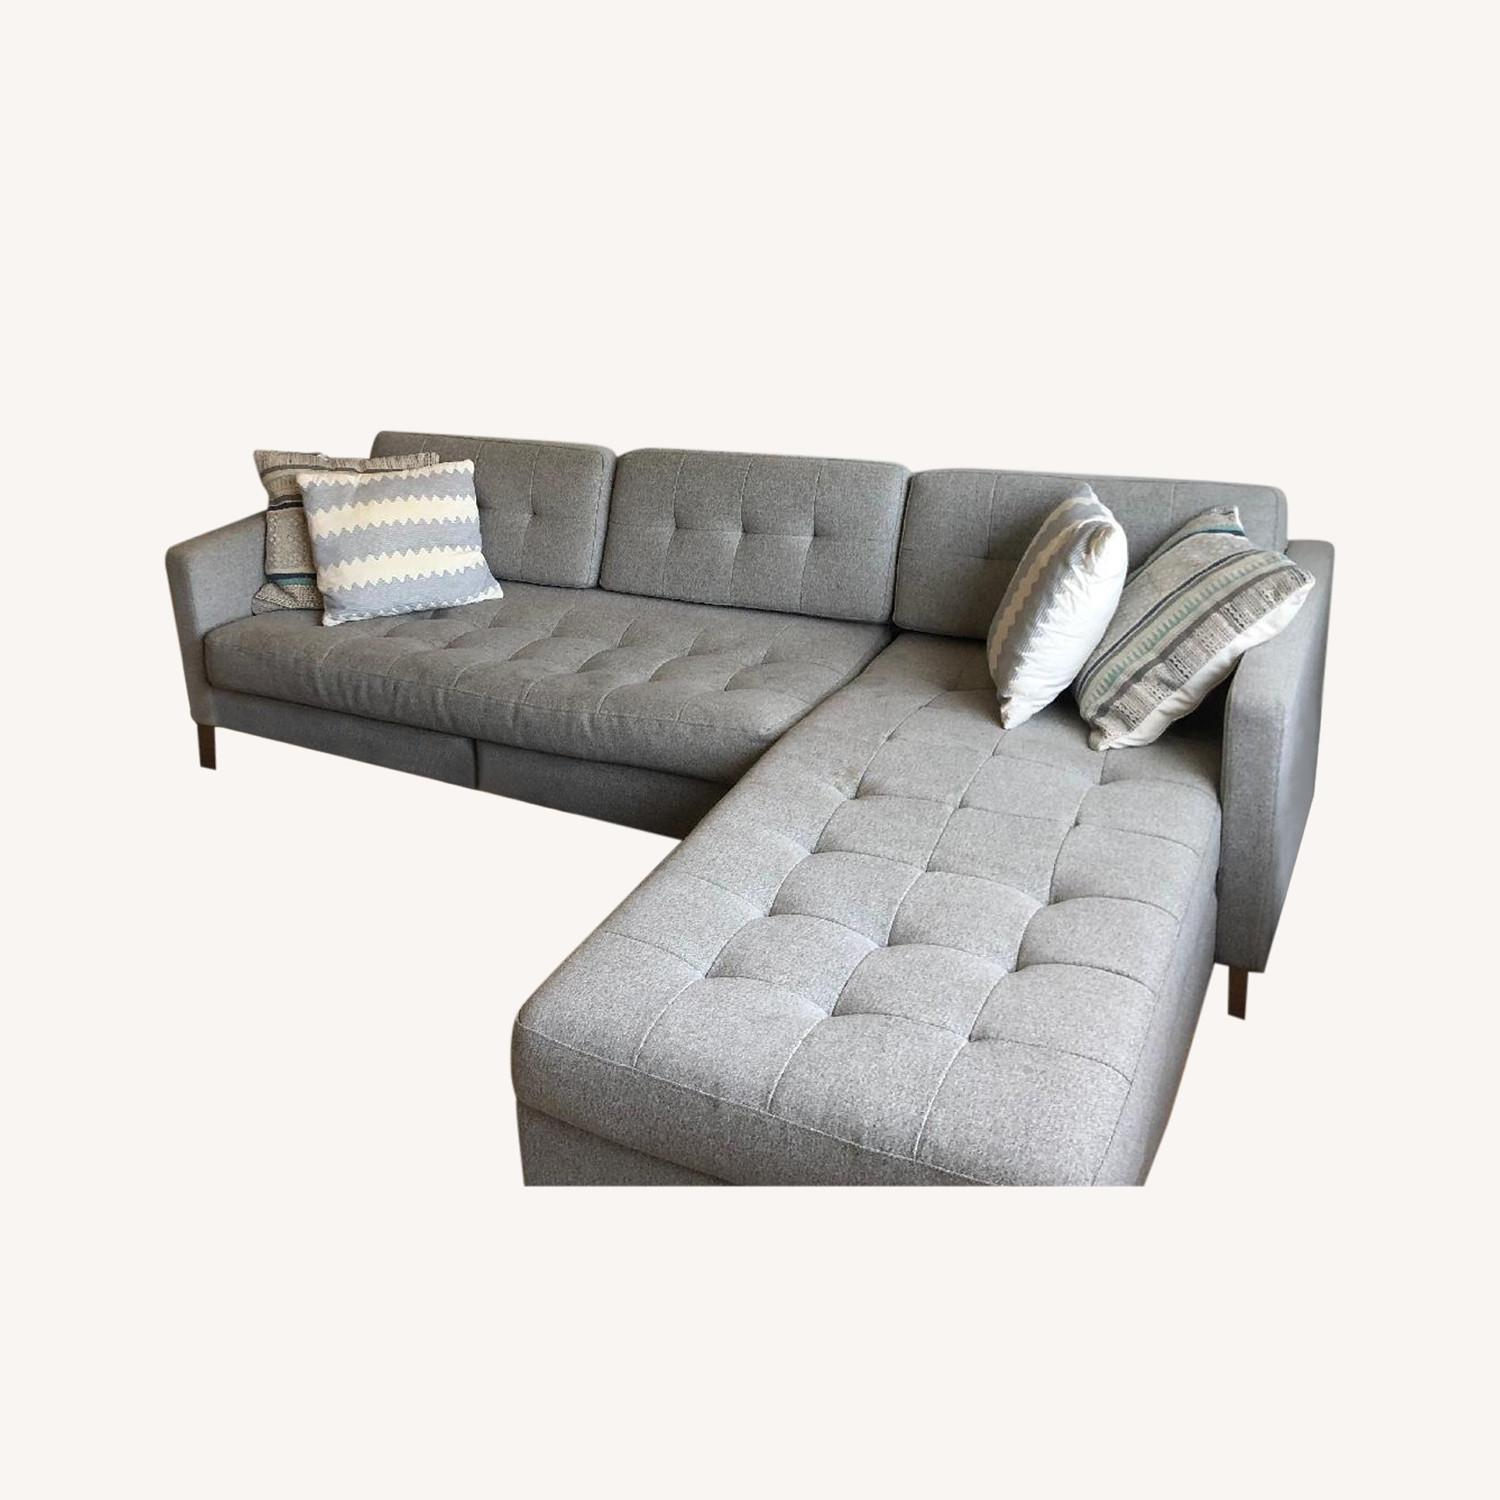 CB2 Ditto II Grey Sectional Sofa - image-0